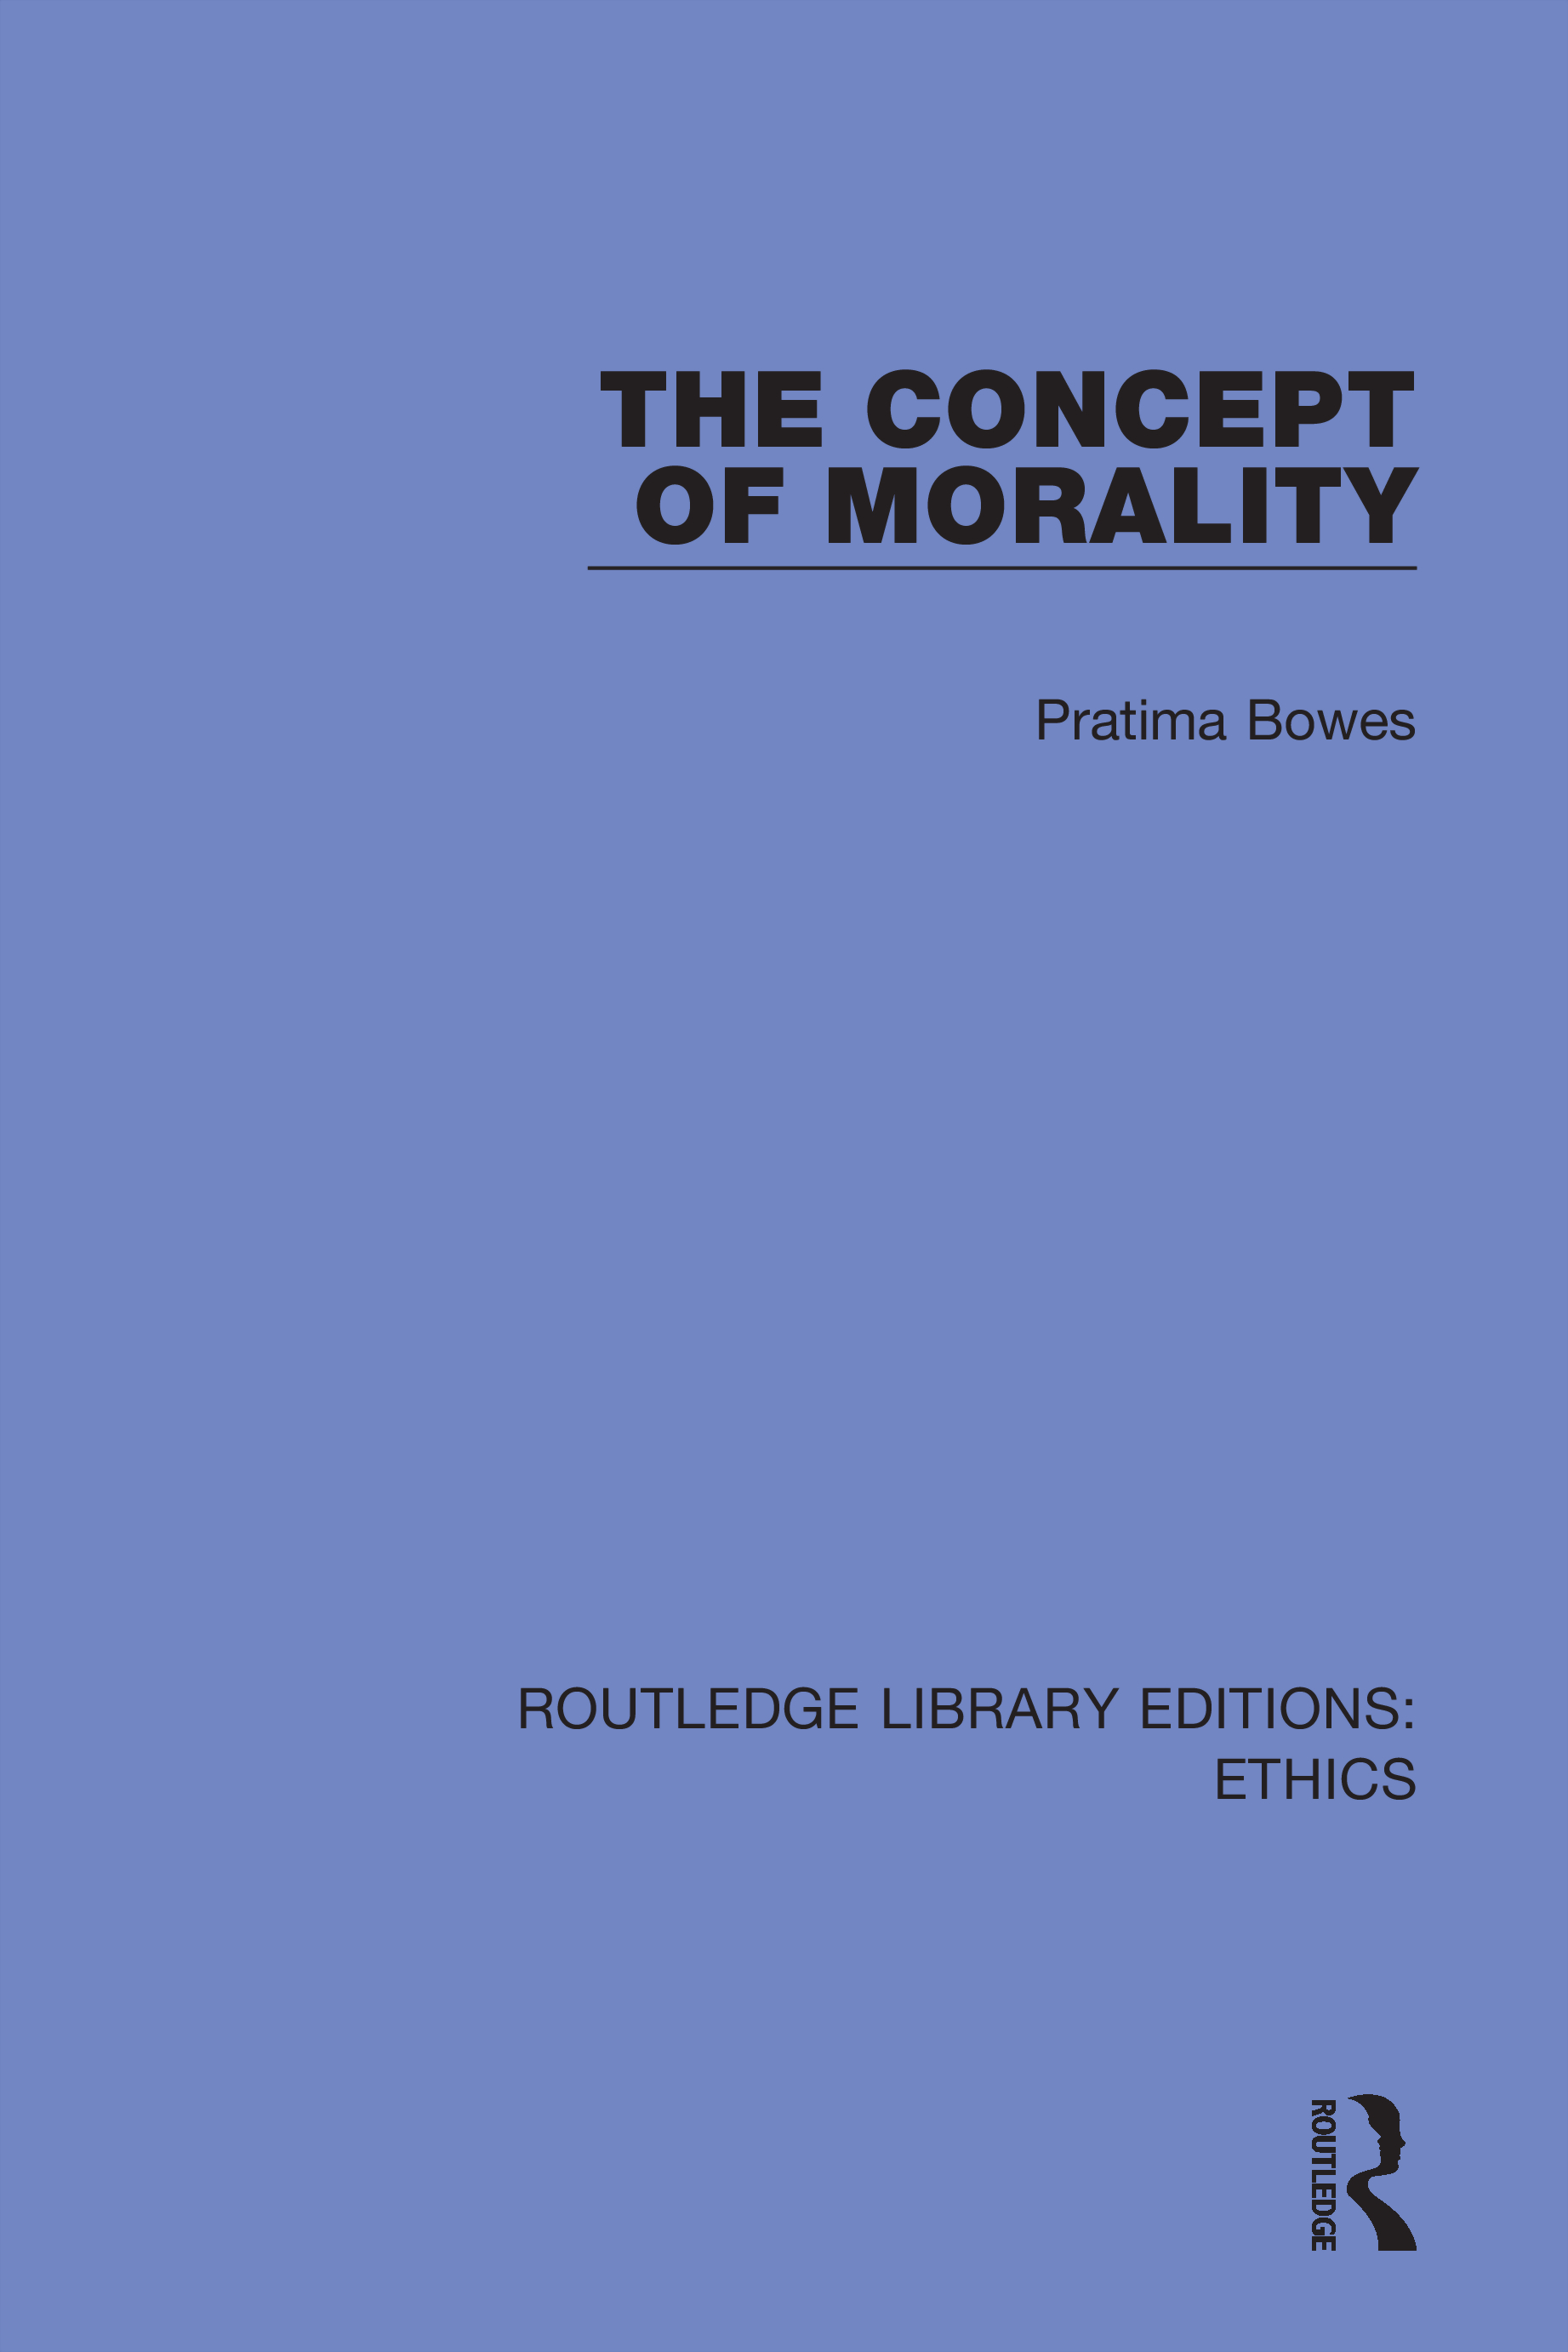 The Concept of Morality